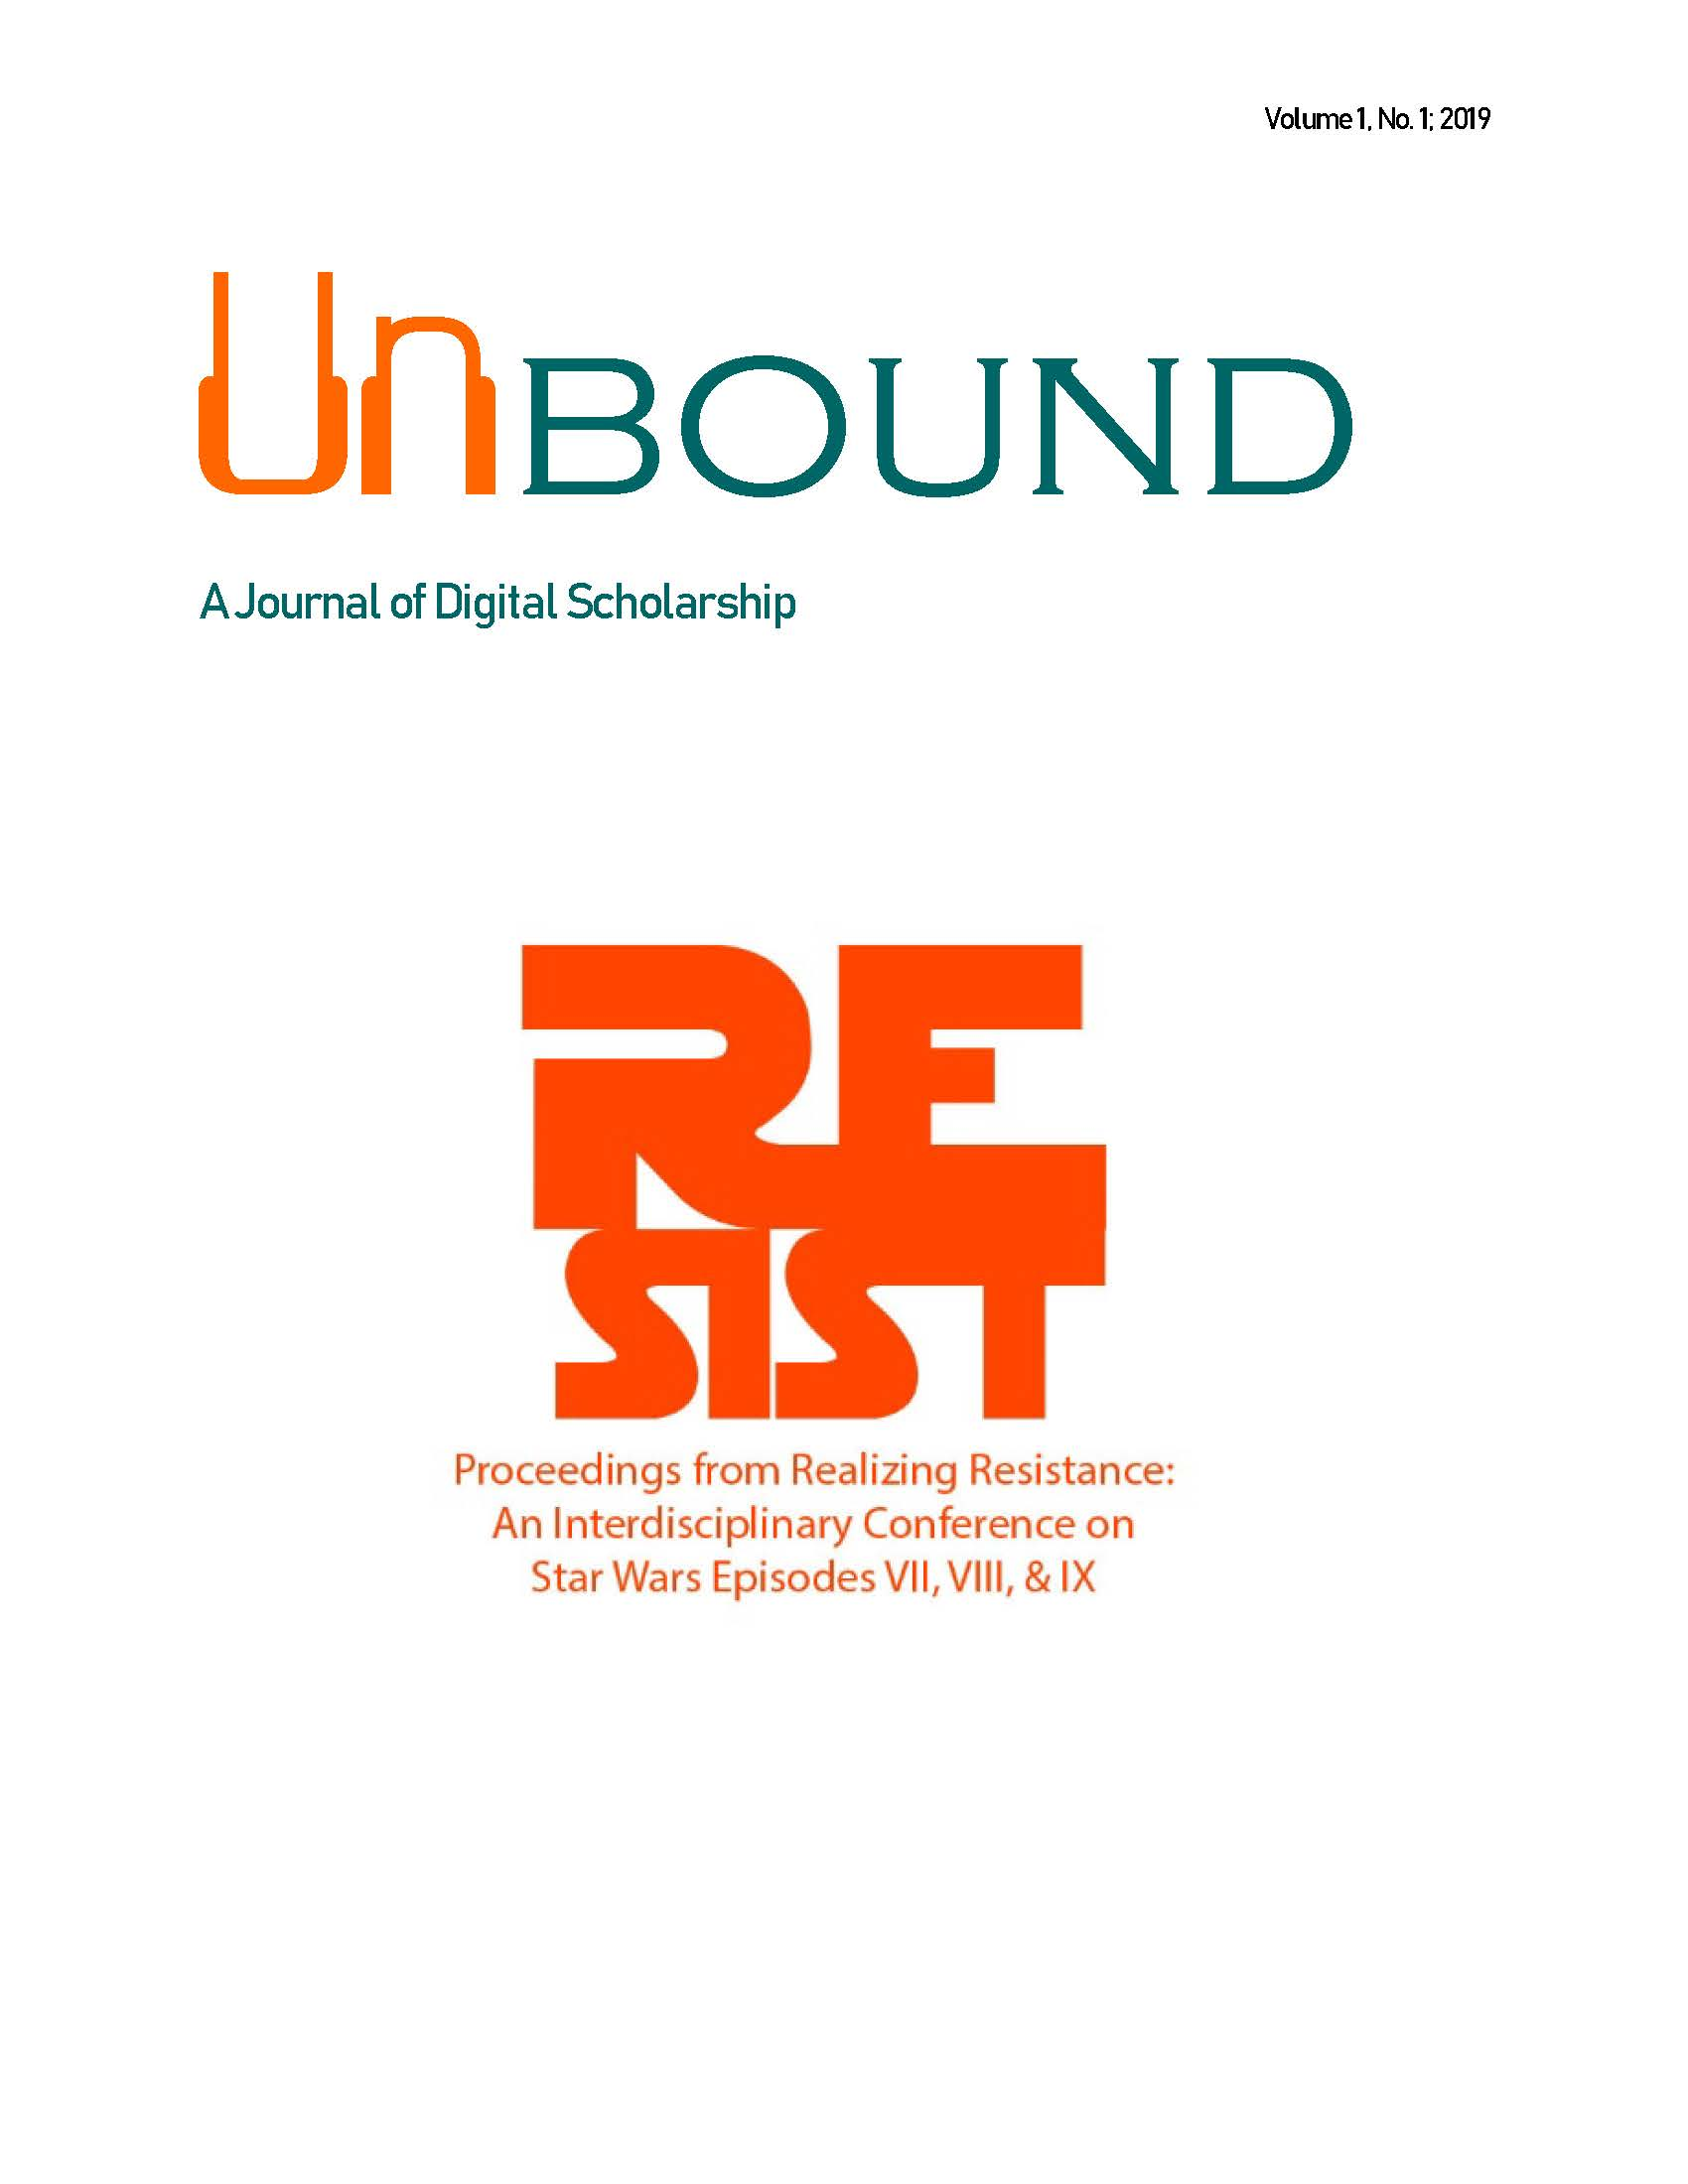 Cover Image of Unbound volume 1, number 1.